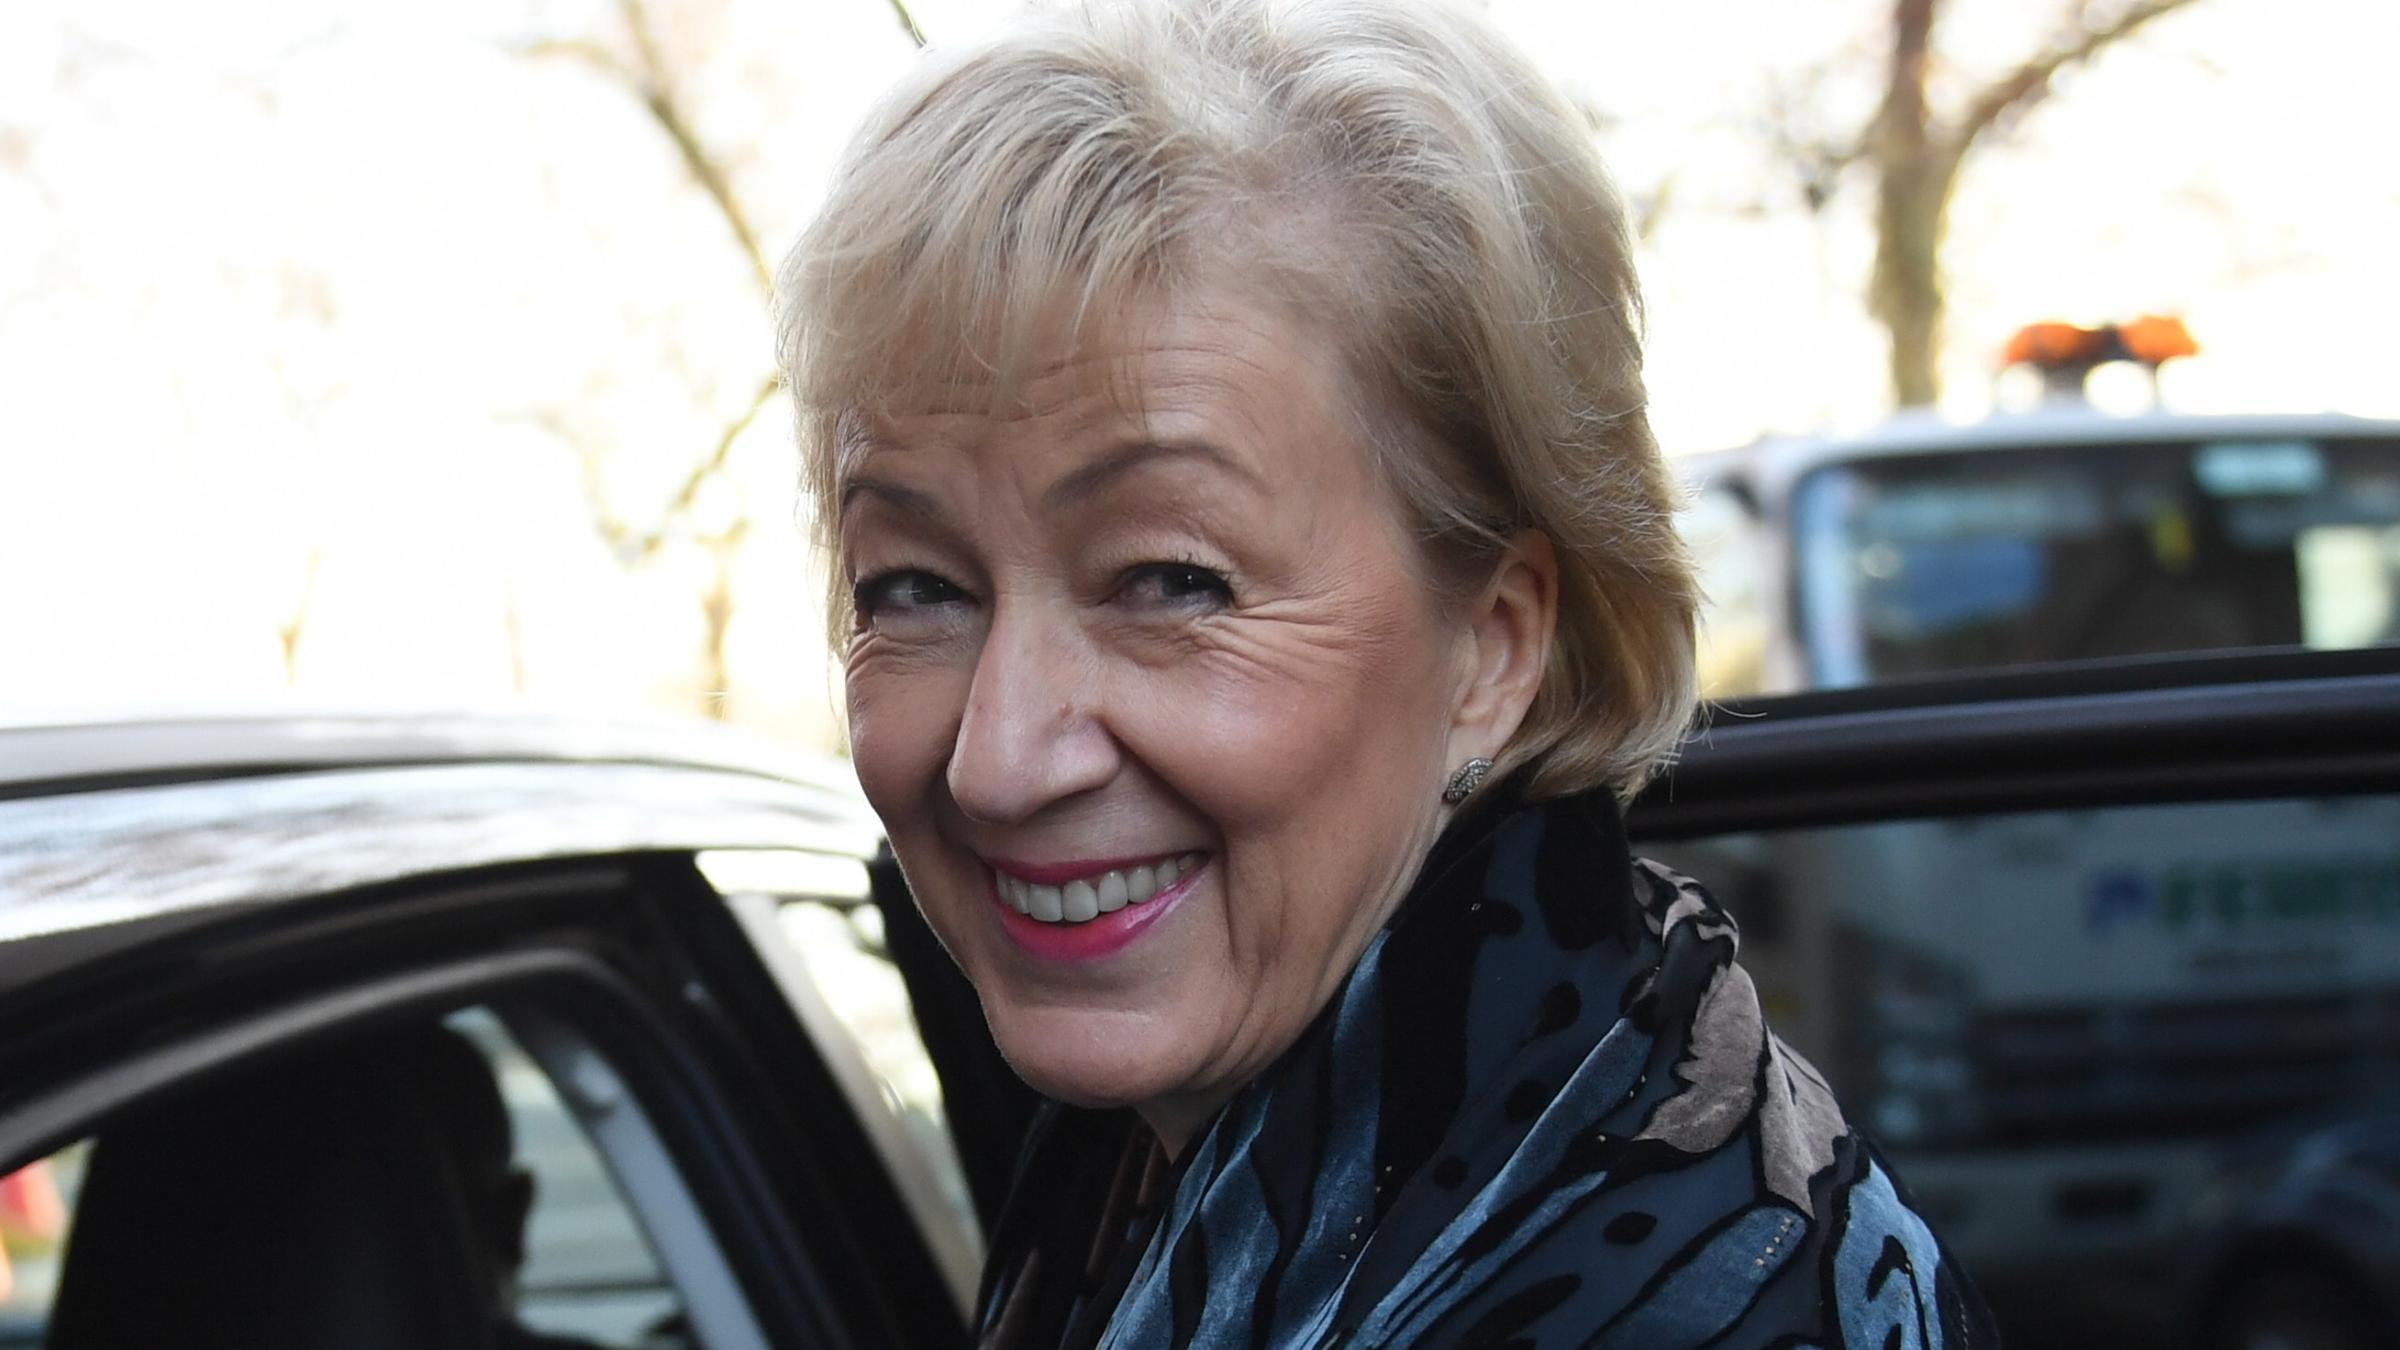 No-deal Brexit 'default position' if no alternative deal works, says Leadsom